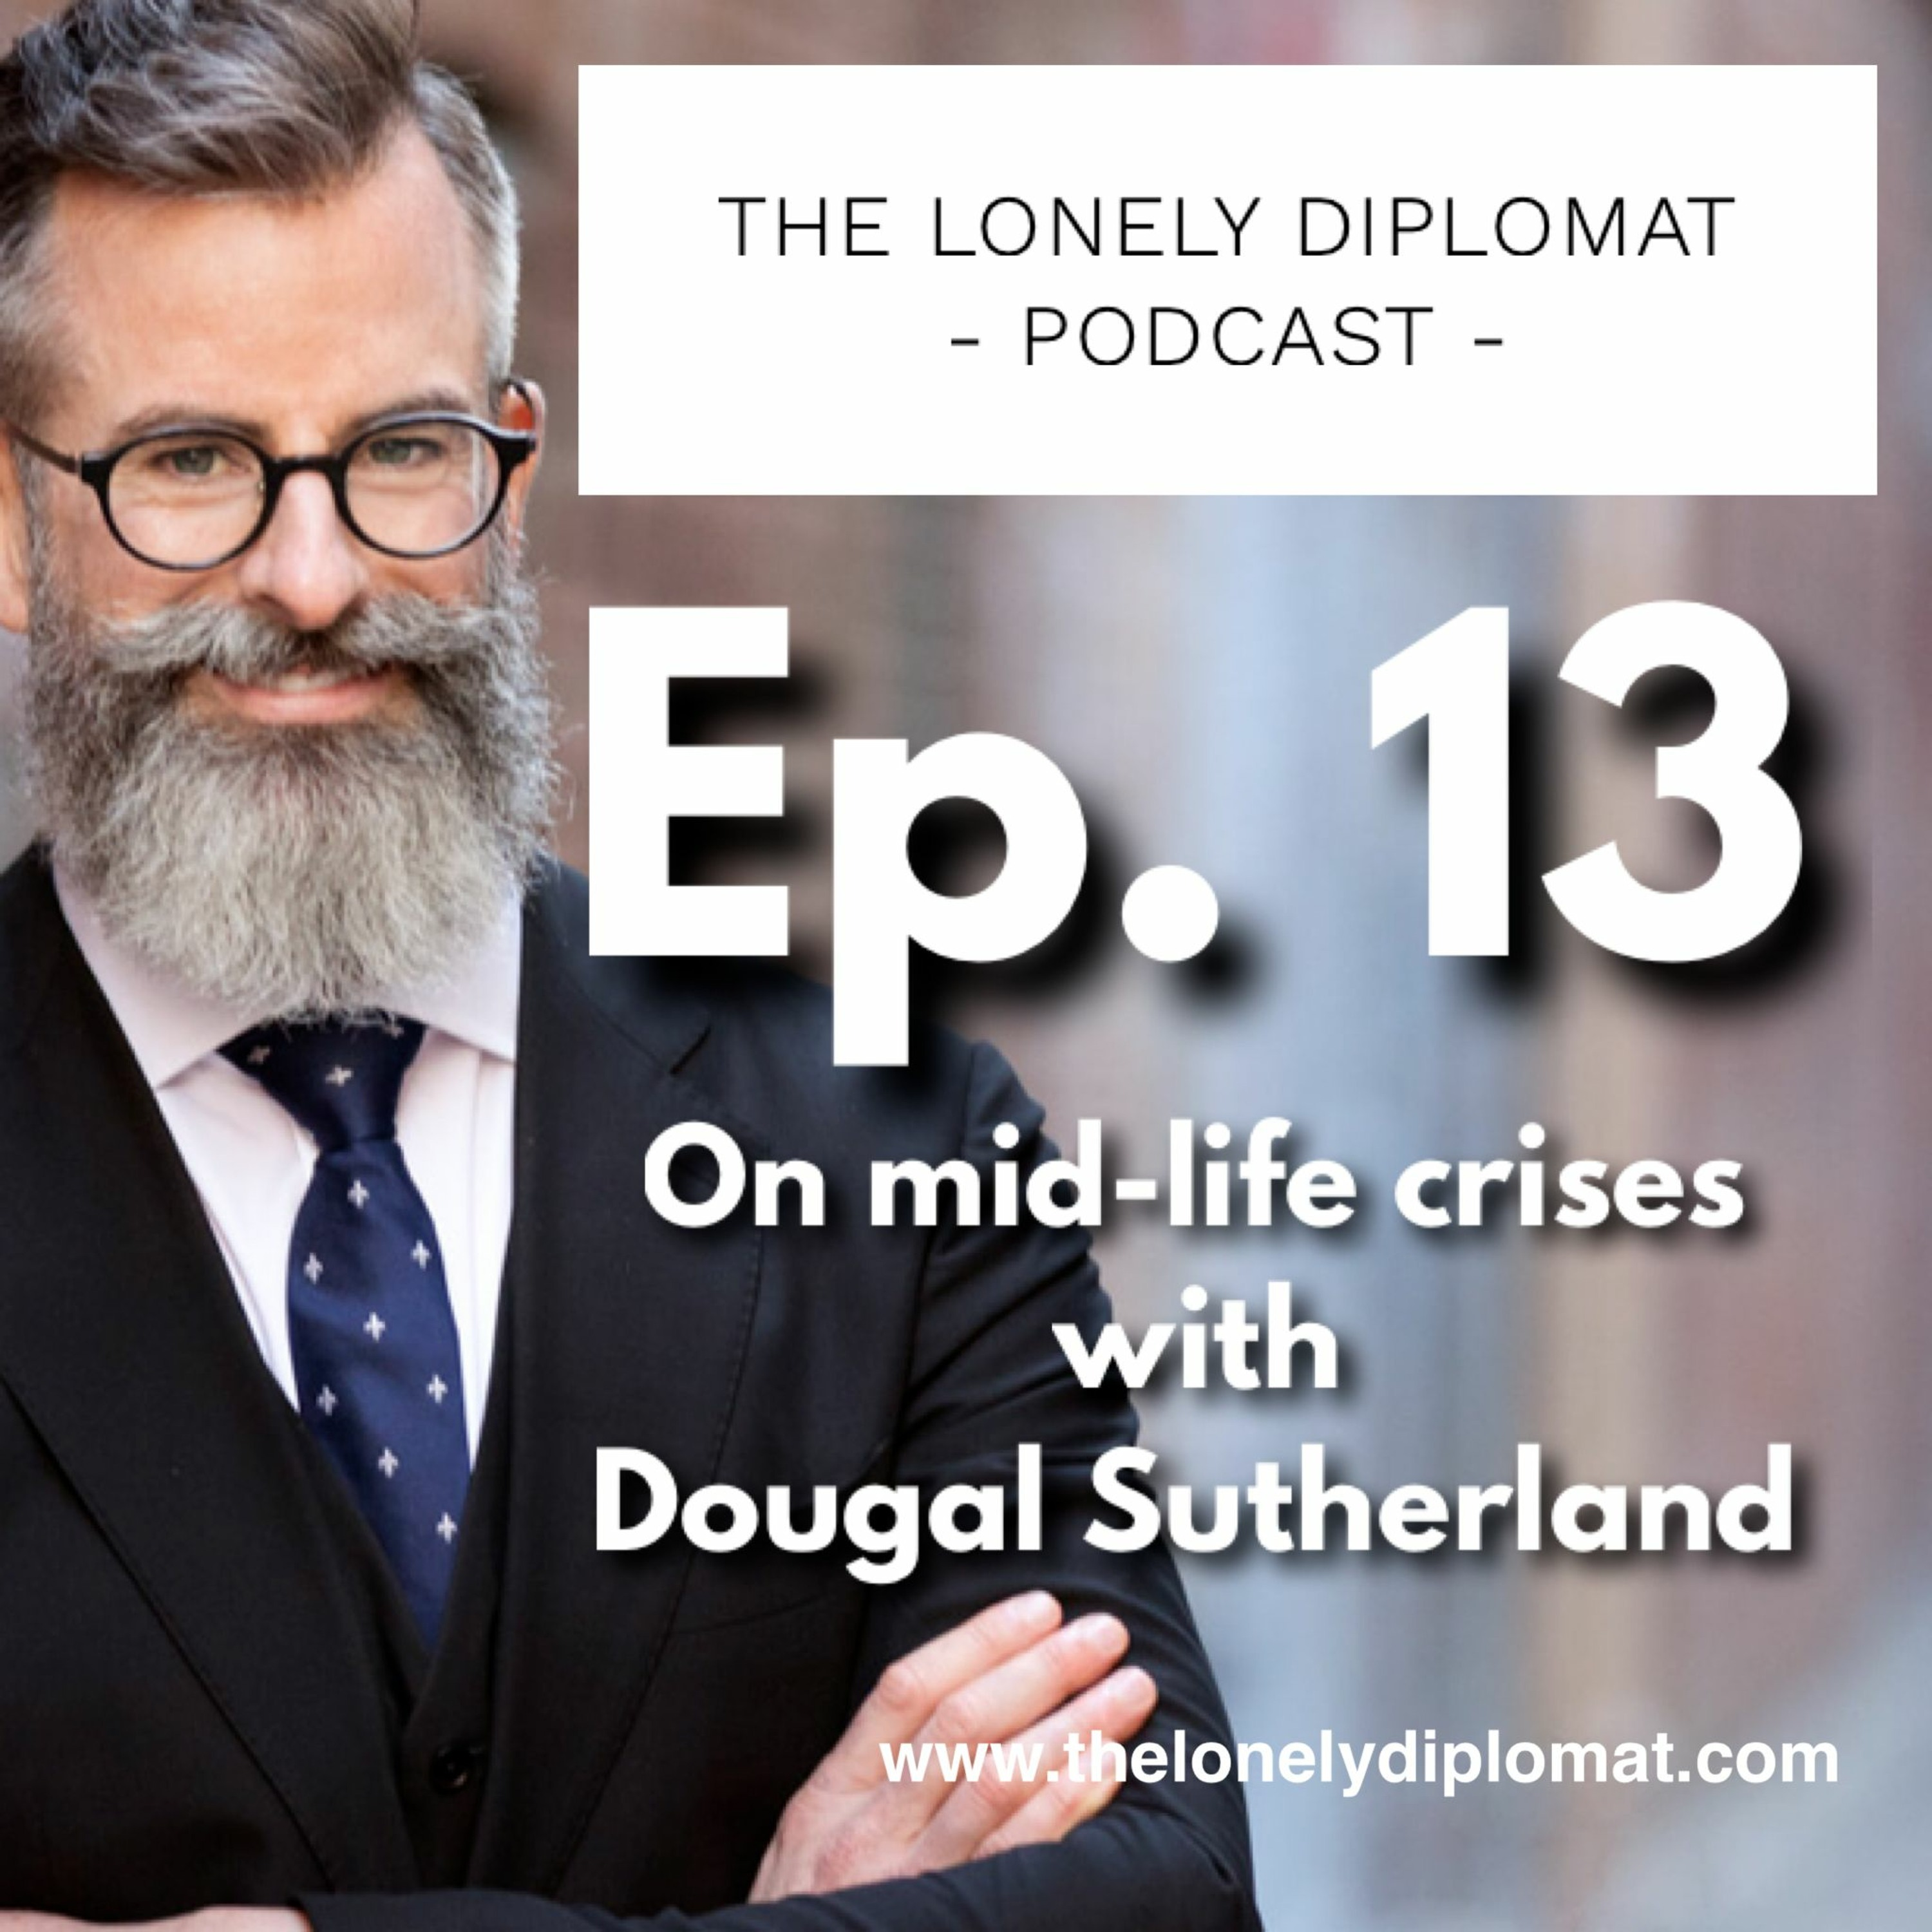 Ep. 13 - On mid-life crises with Dougal Sutherland